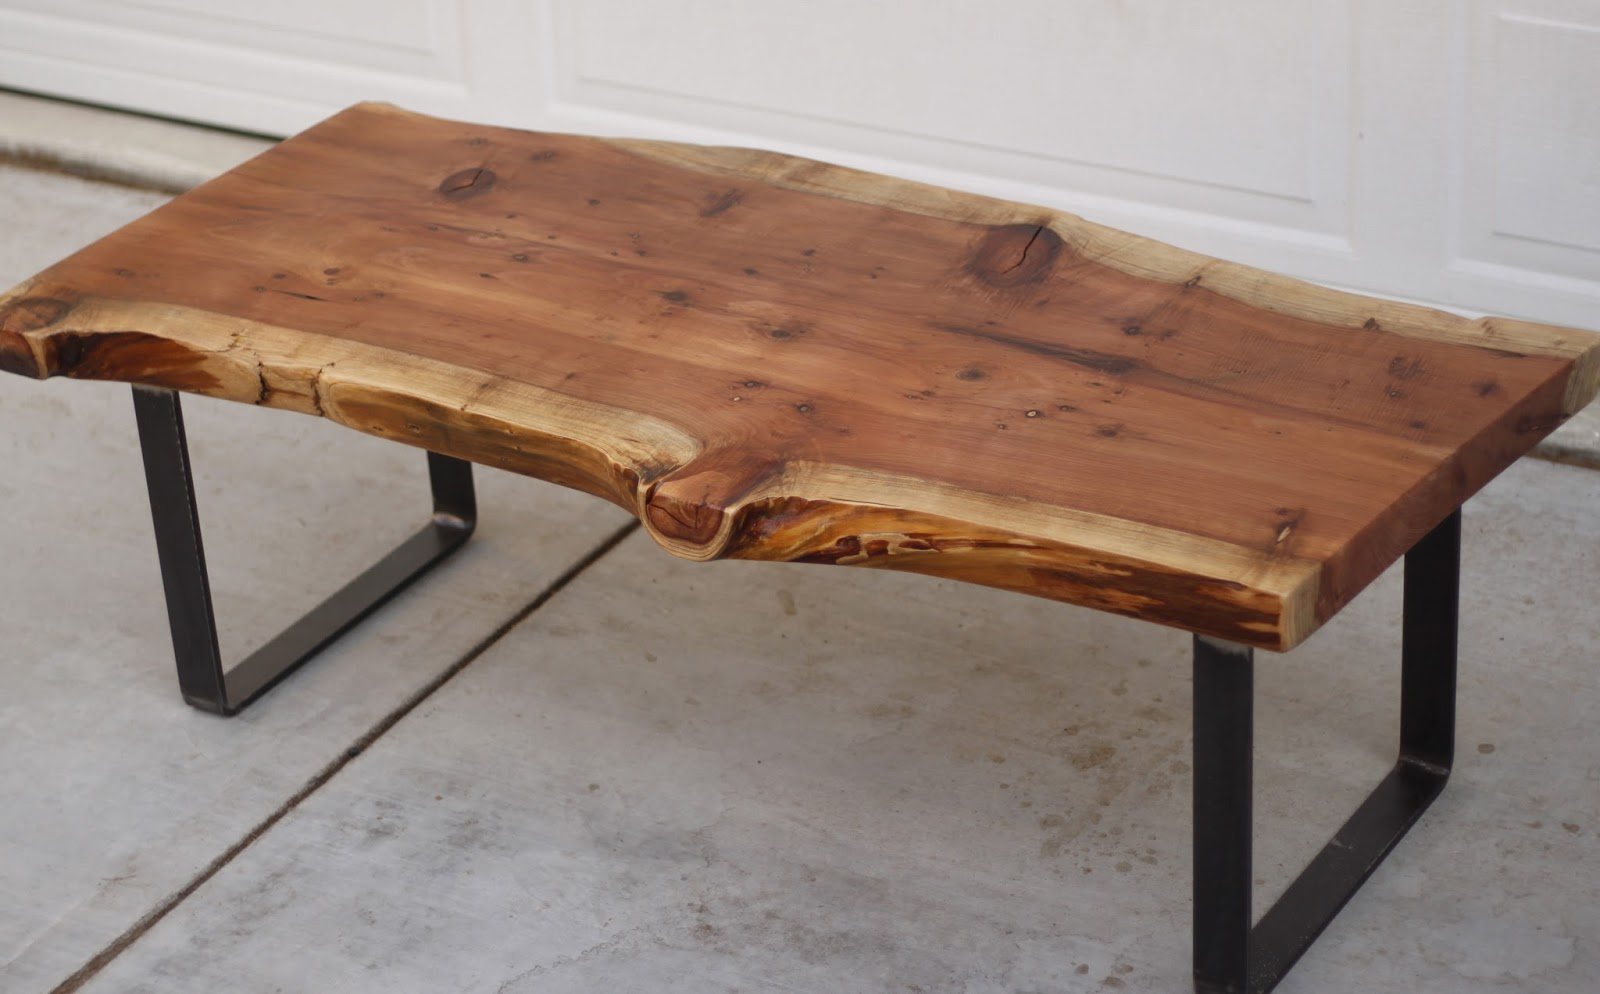 Genial Redwood Slab Coffee Table